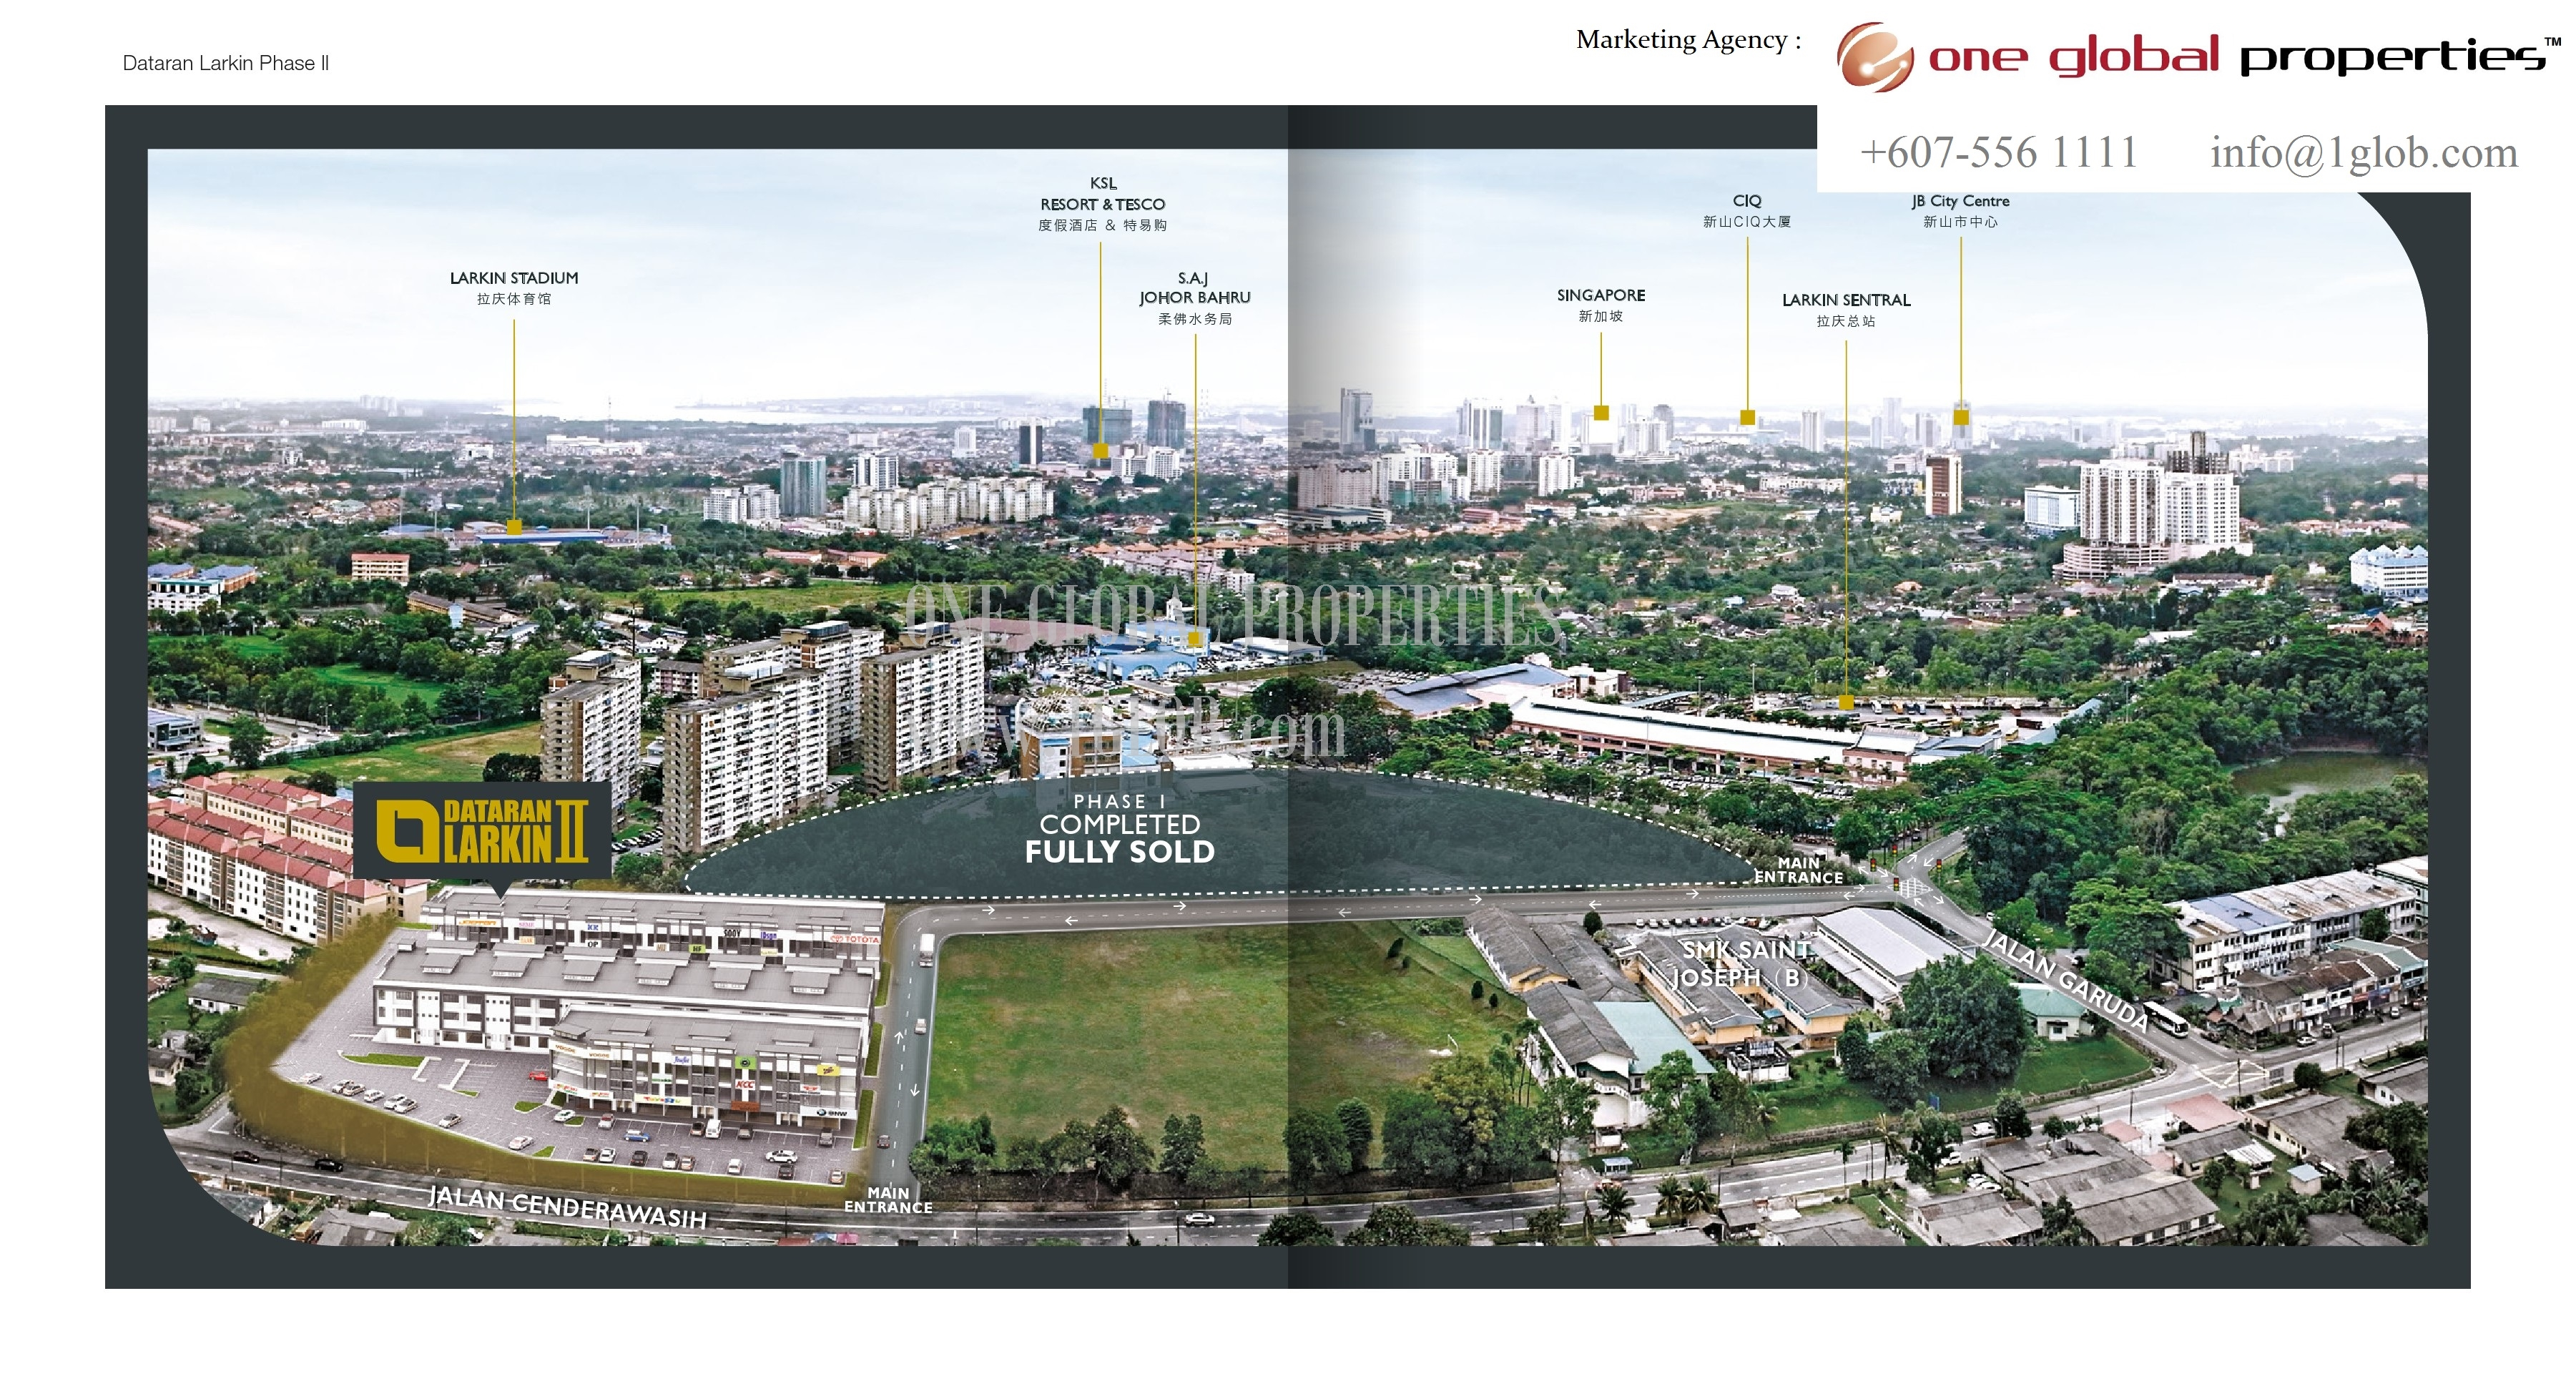 Dataran Larkin Project Brochure Page 2 (This link will open a PDF document)